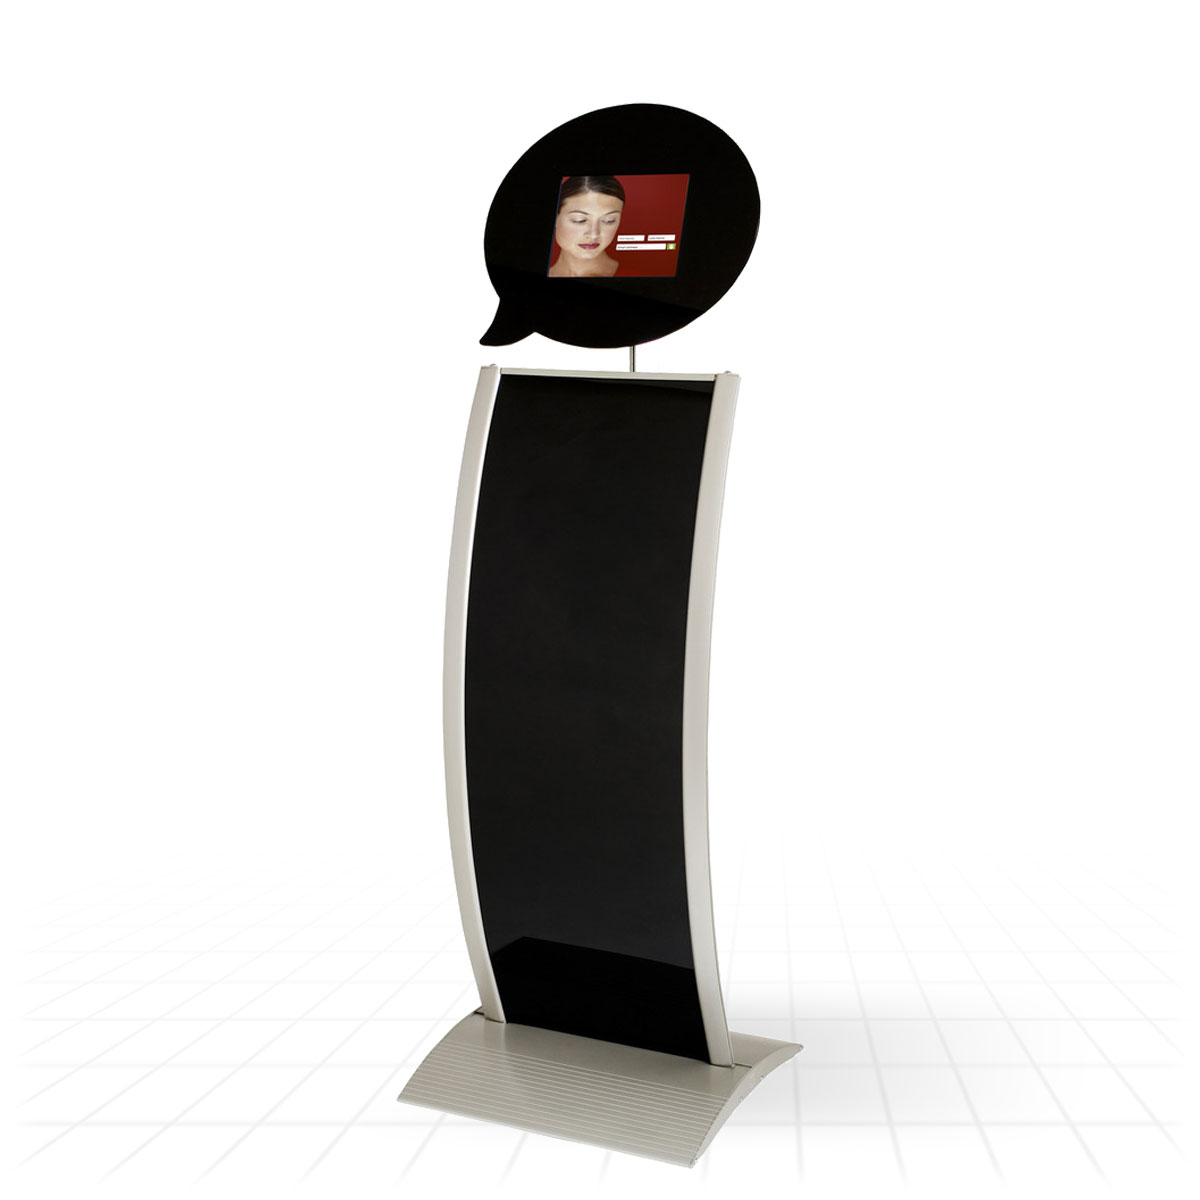 Exhibition Stand Kiosk : Kiosk tablet display stand stands